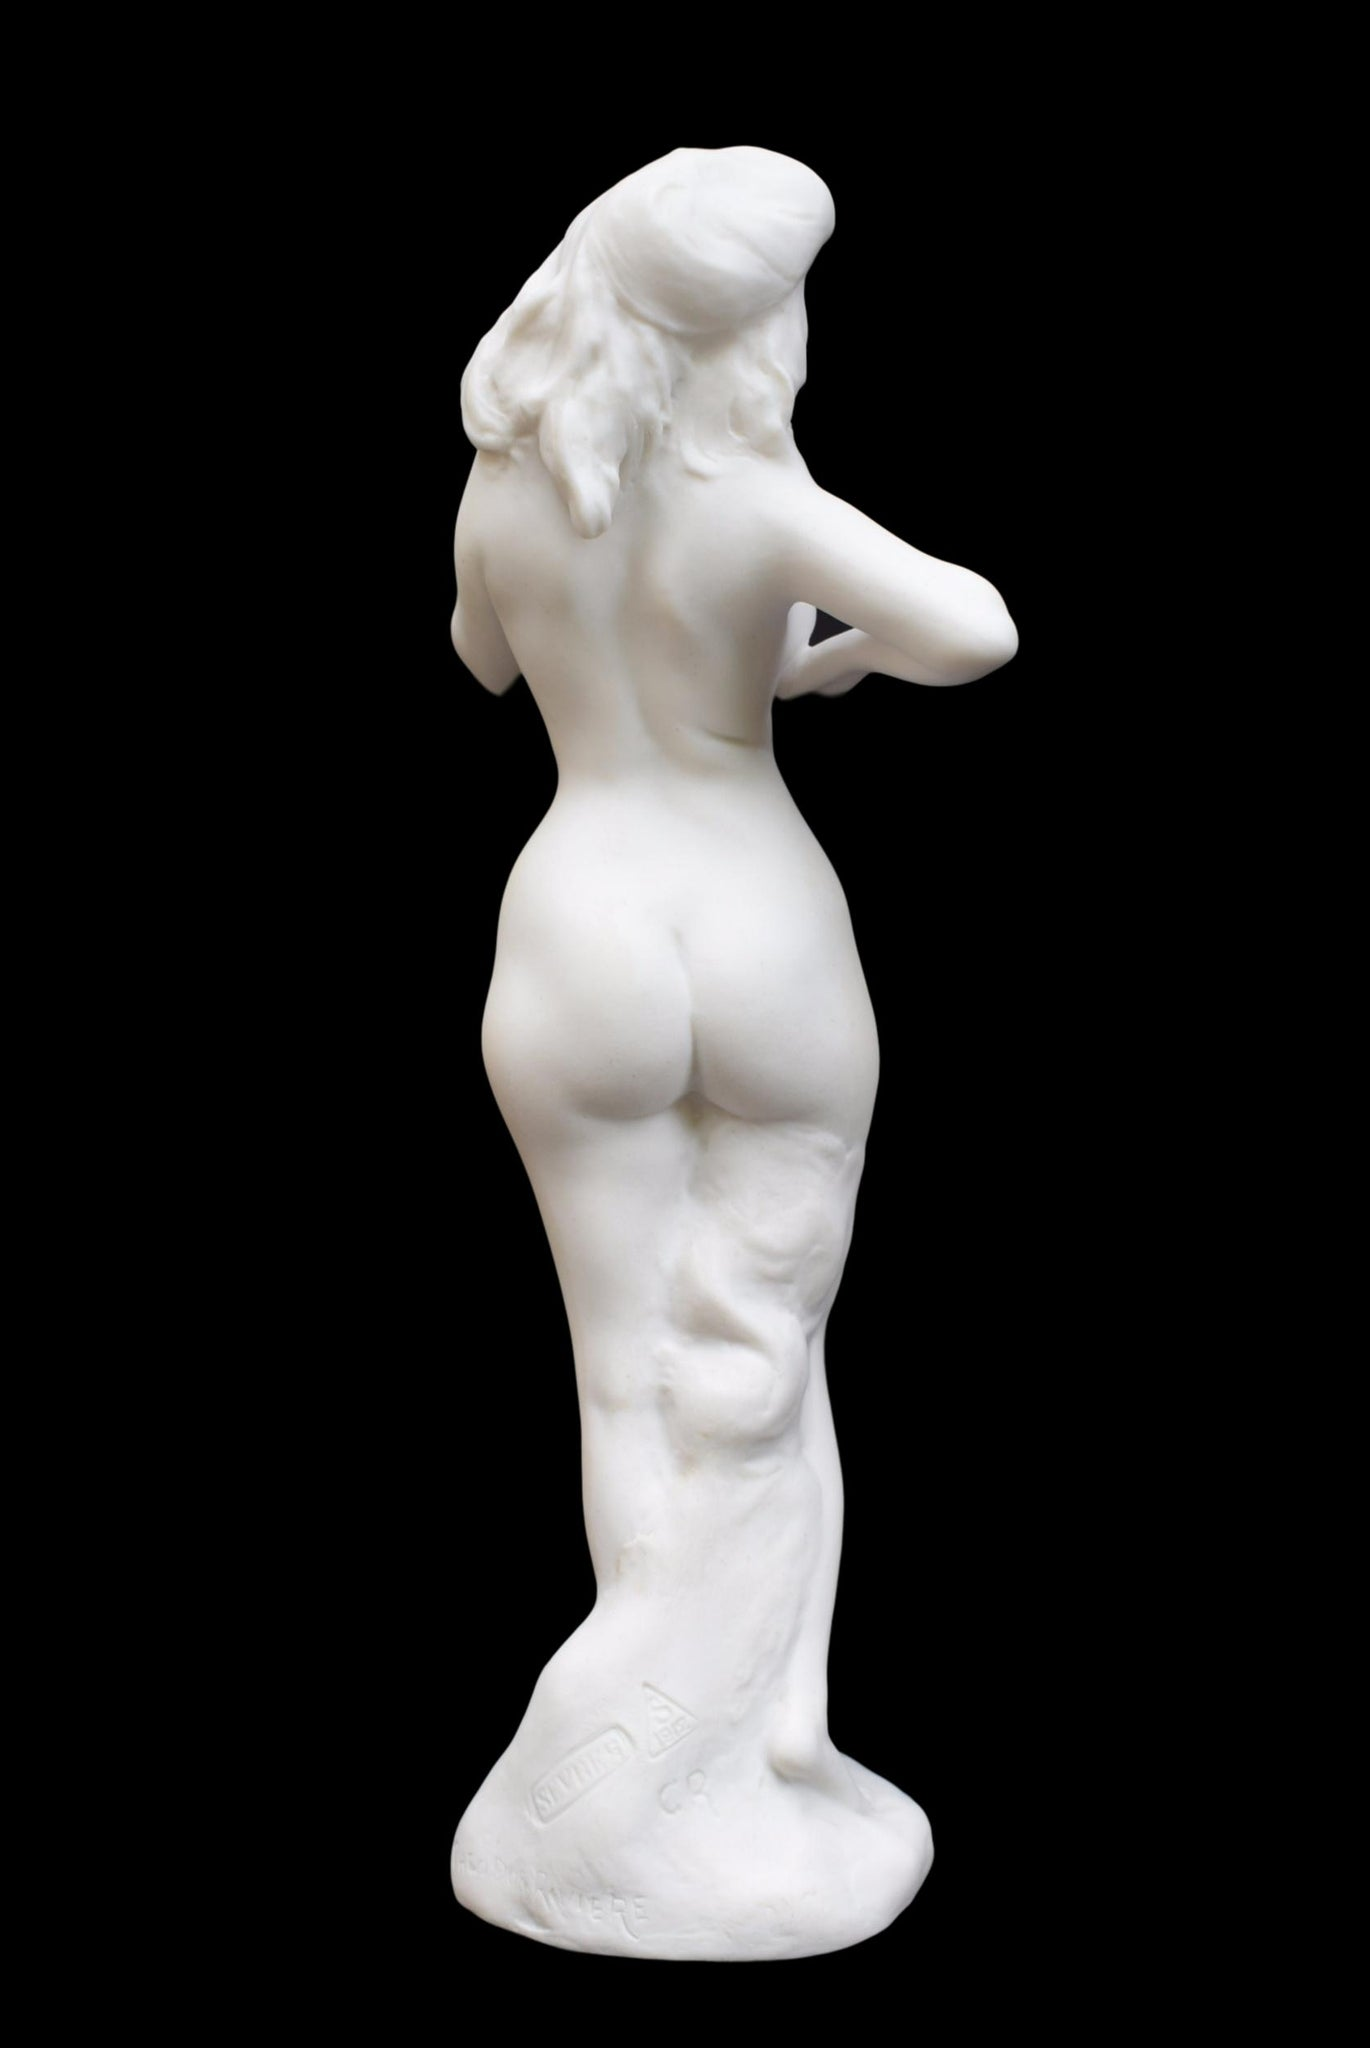 French Antique Rare Sevres Porcelain Statue Nude Woman After Theodore Riviere - National Manufacture of Sevres Bisque Biscuit Figurine